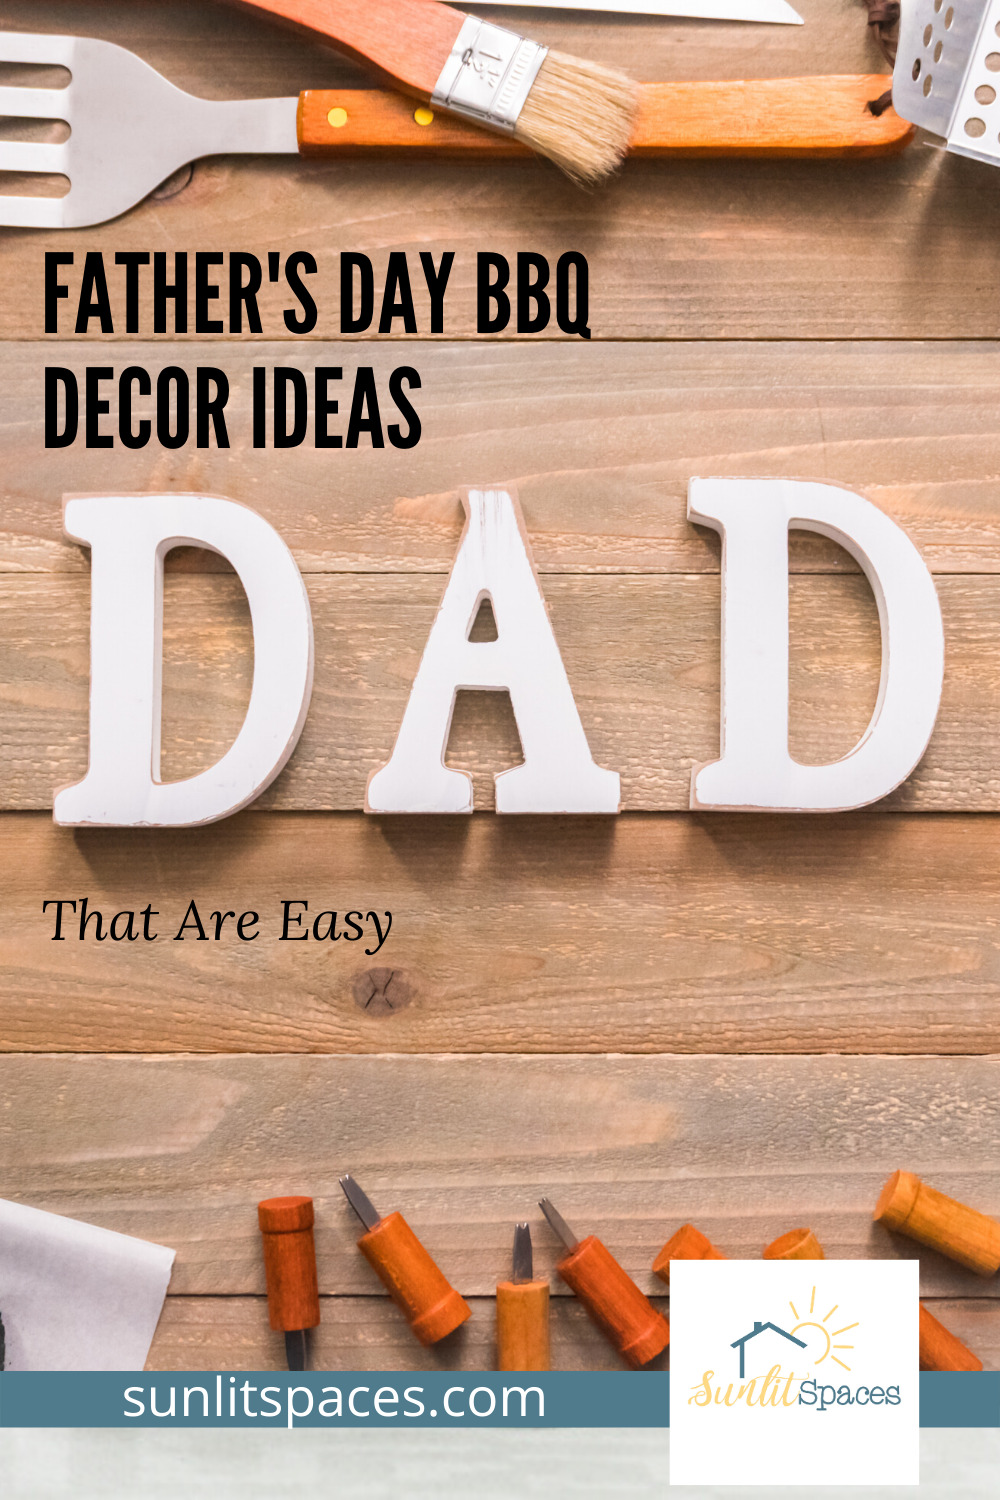 Make your dad's day with these cute DIY father's Day BBQ decor ideas. Let him know just how special he is. Decorations always make or break a party. Read this post to learn more. #DIYpartydecorations #fathersdaybbq #fathersday #sunlitspacesblog